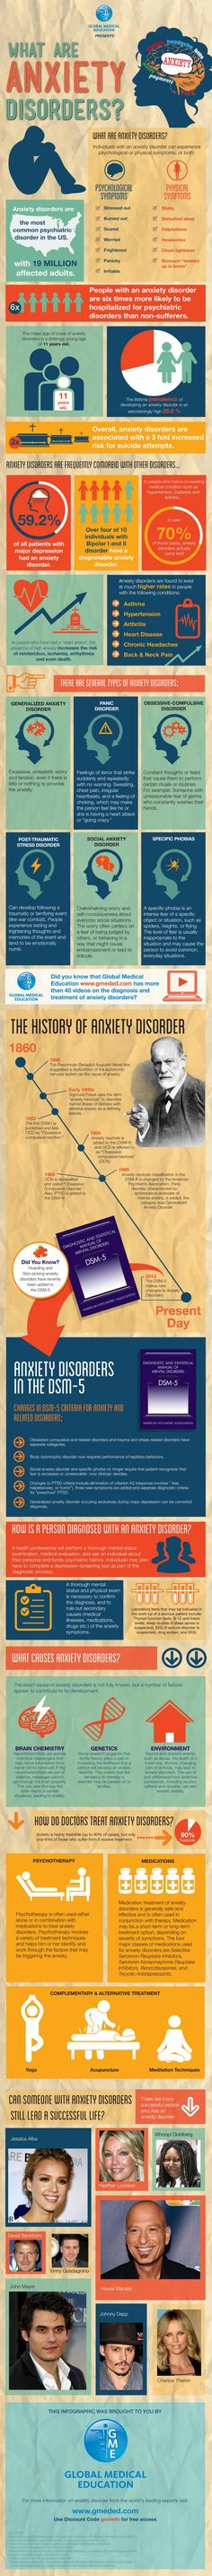 What are Anxiety disorders? Anxiety disorders are the commonest psychiatric illnesses globally. There is no test for anxiety disorders like panic disorder, PTSD,OCD or social anxiety disorder and the diagnosis is based on a good history and examination. In this infographic, learn all about anxiety disorders - what they are, how they are diagnosed and how to treat them.  But I want to know WHY we have them . . .